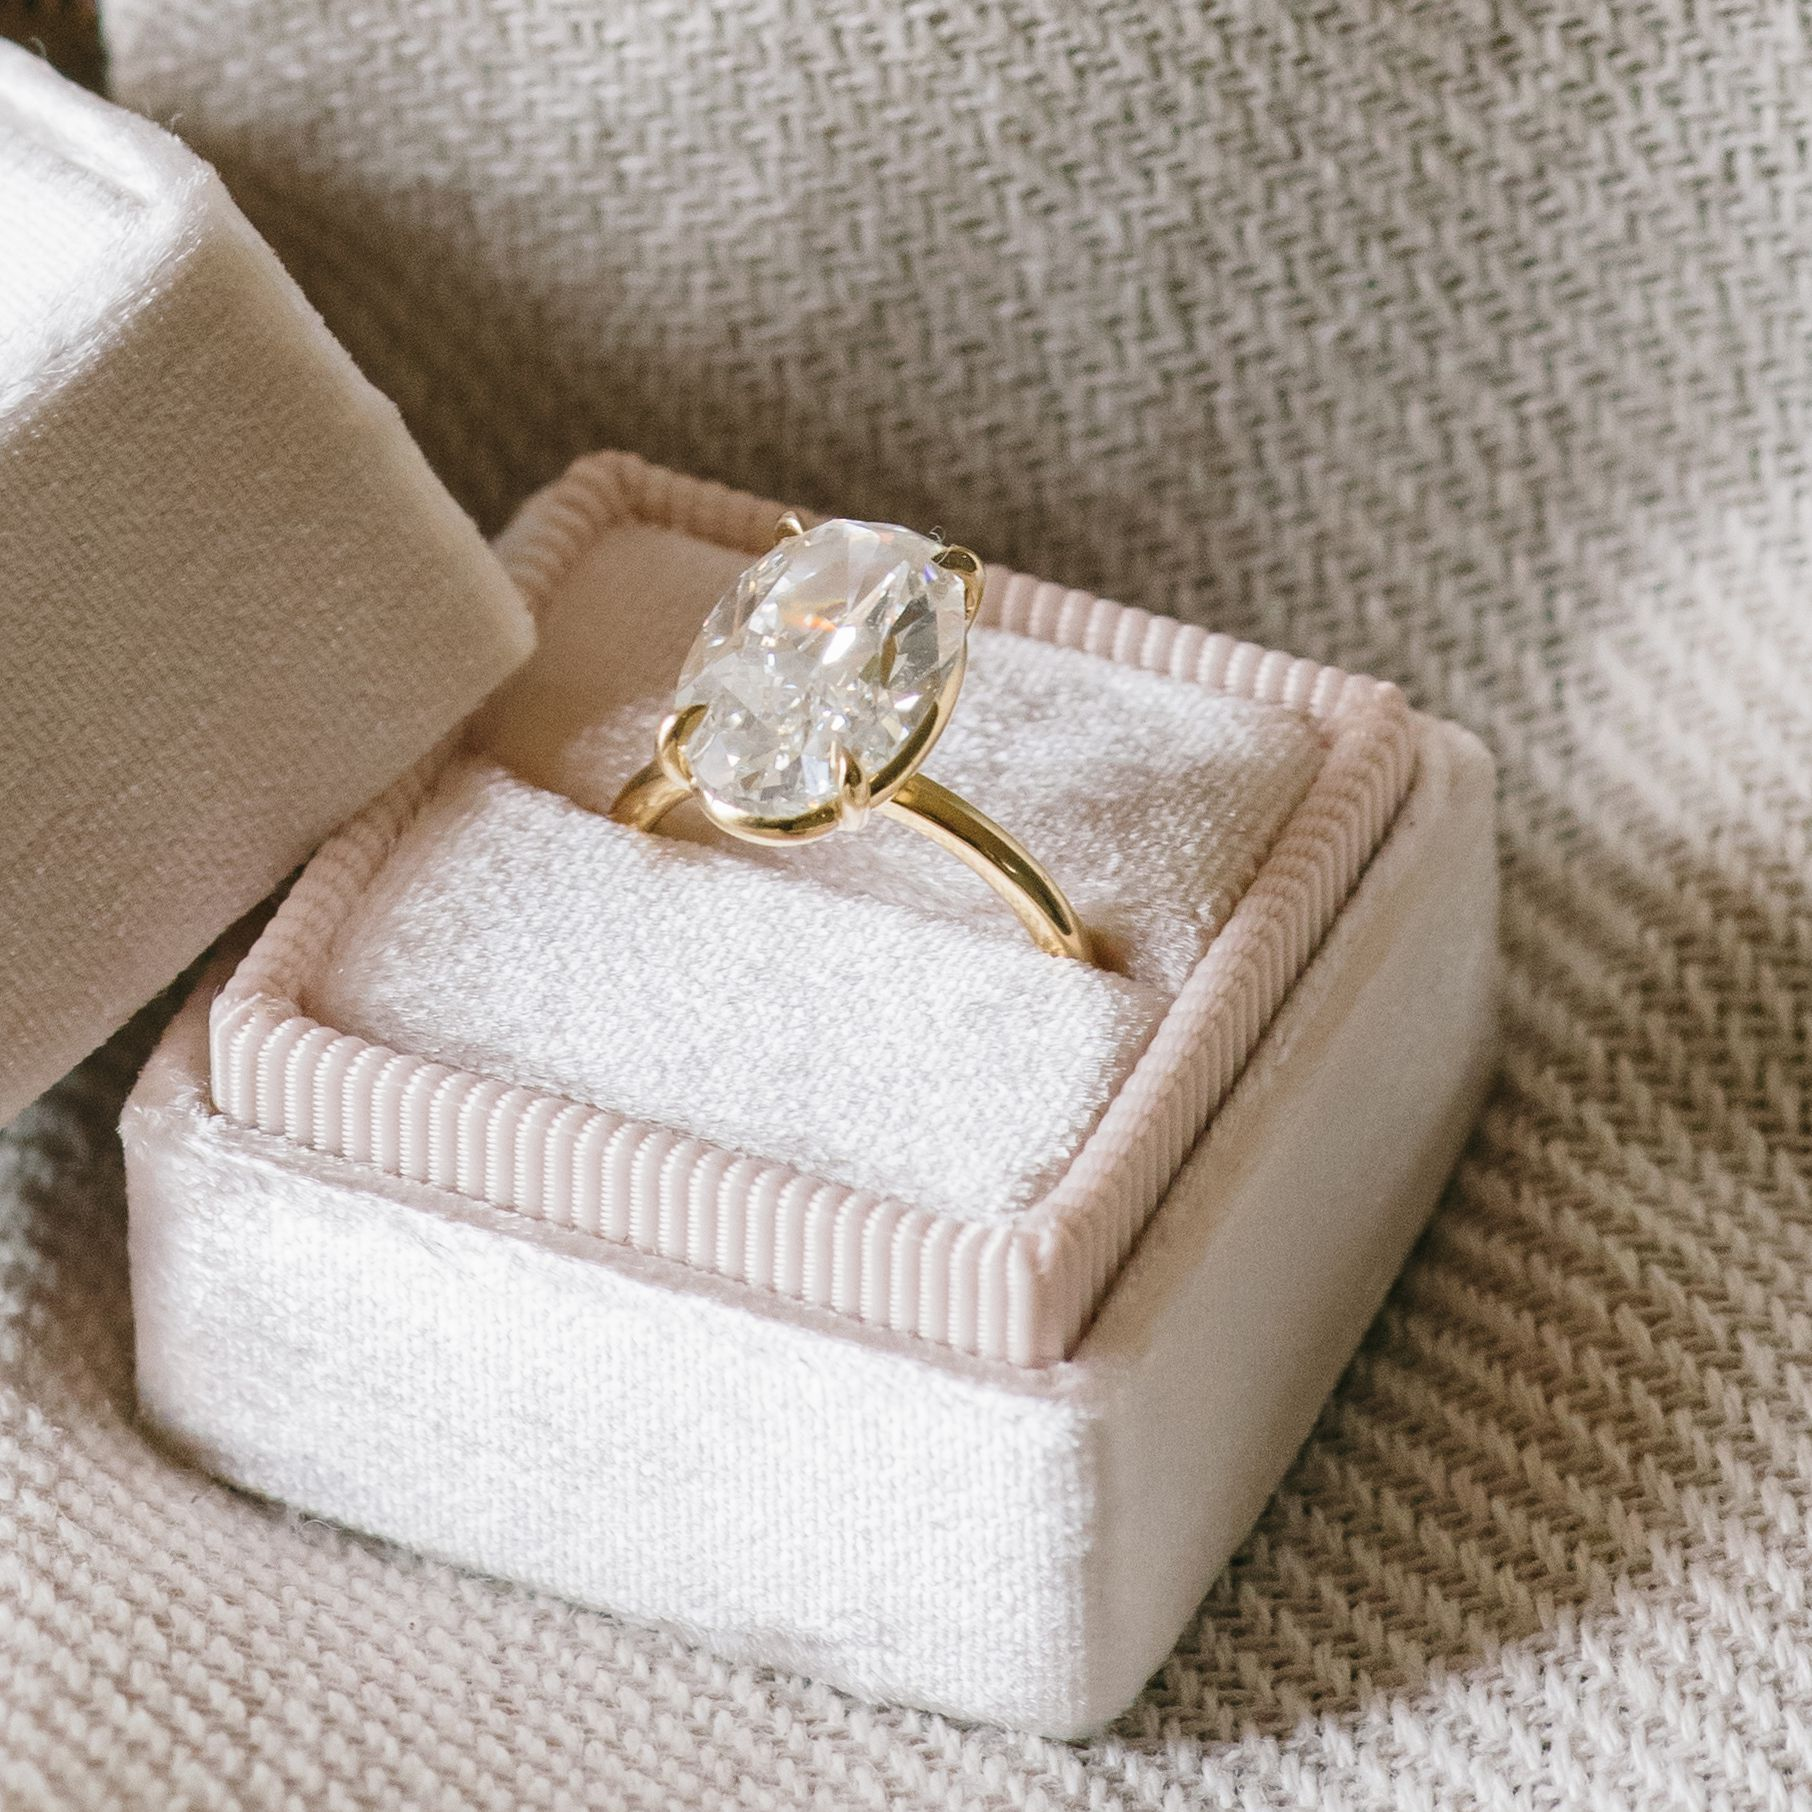 How To Reset A Diamond Ring The Complete Guide